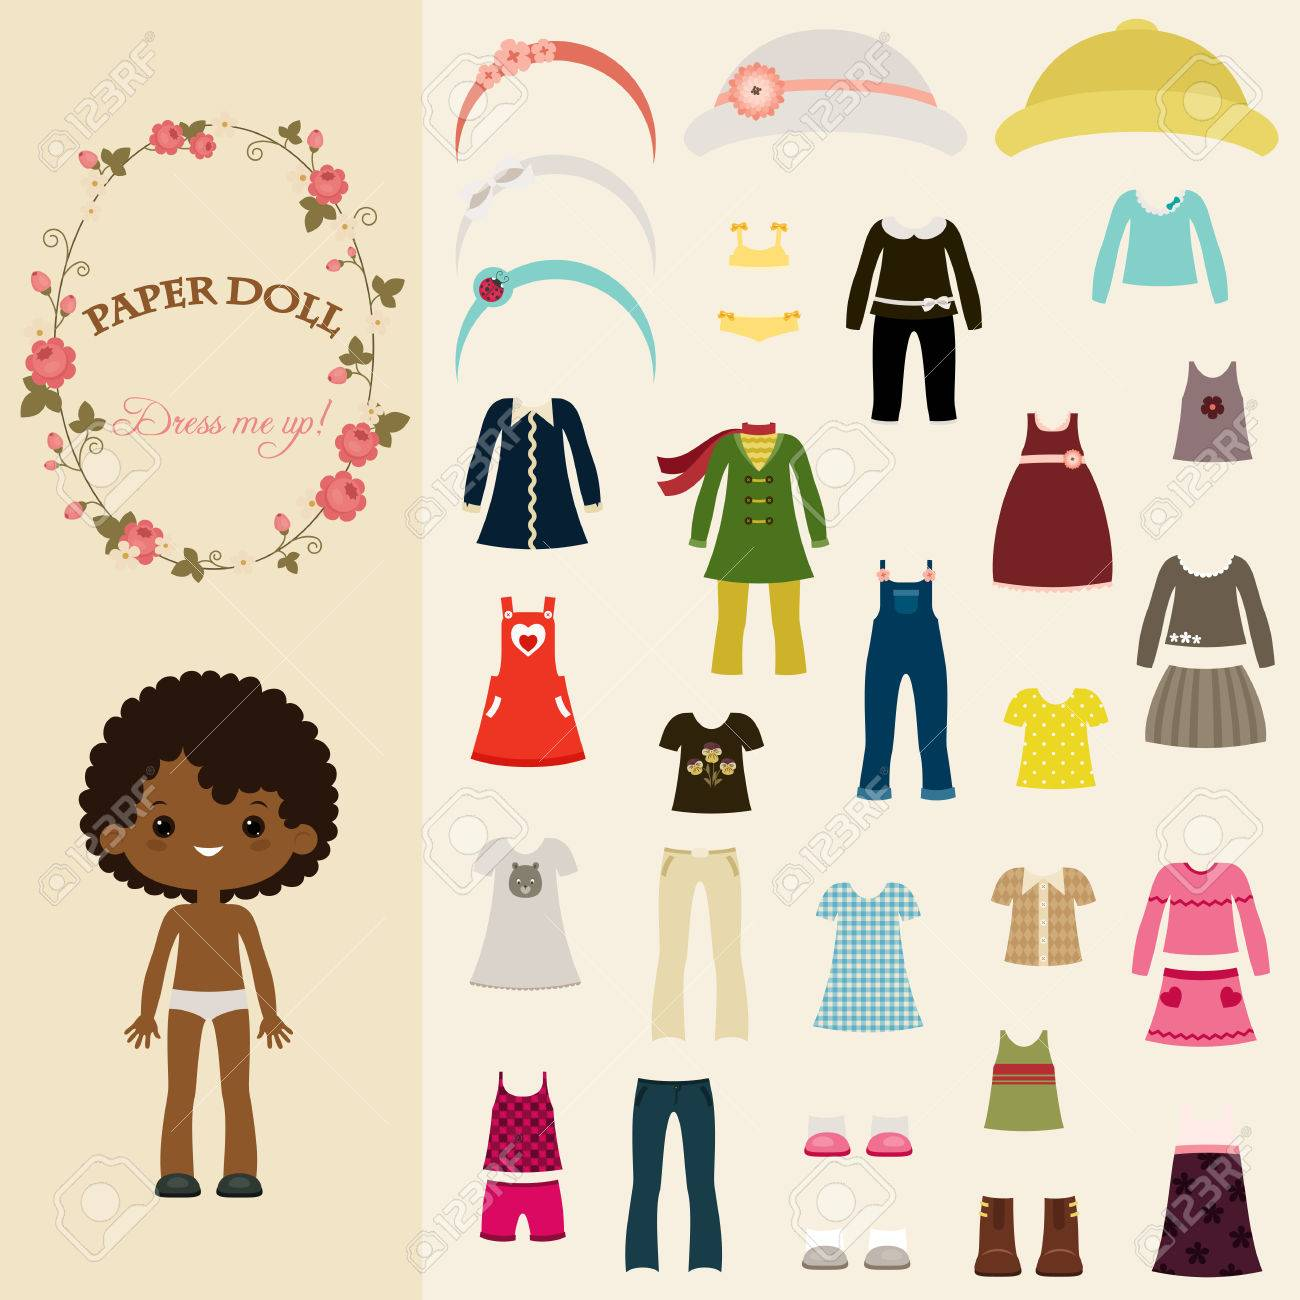 Cute Dress Up Paper Doll With Body Template Of Black Girl Royalty ...